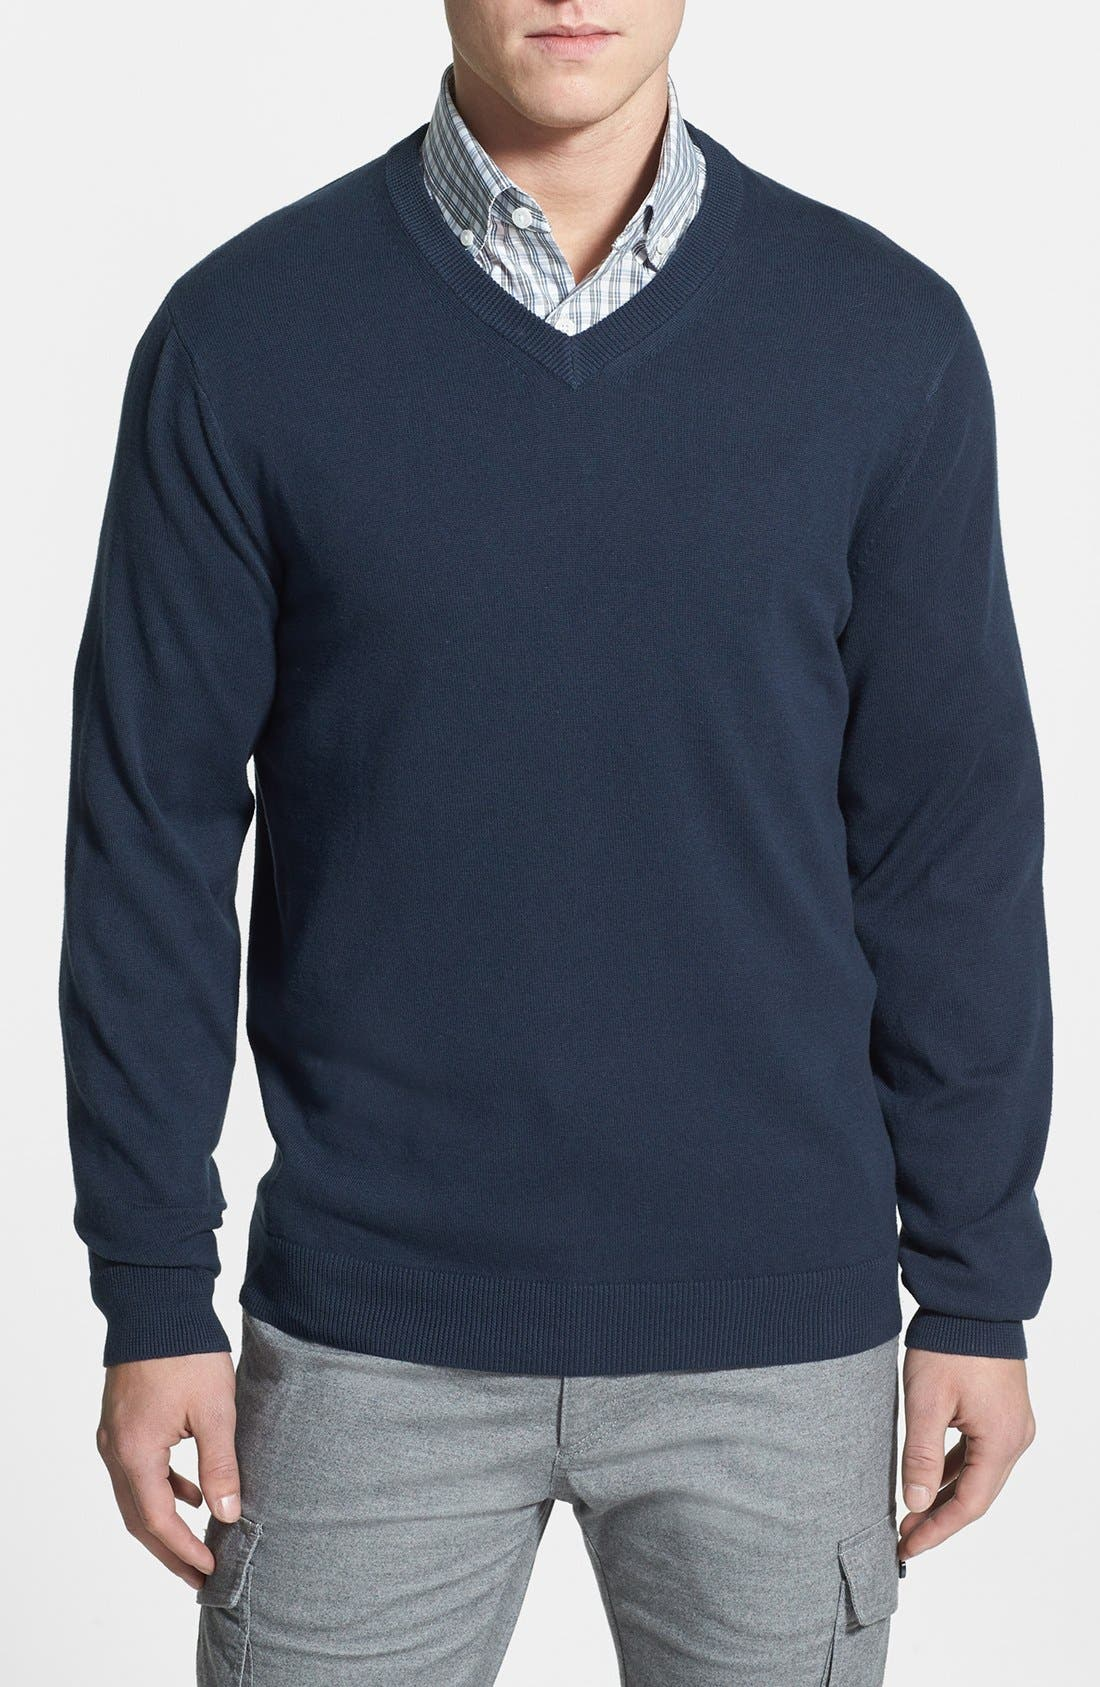 Main Image - Nordstrom V-Neck Cotton Sweater